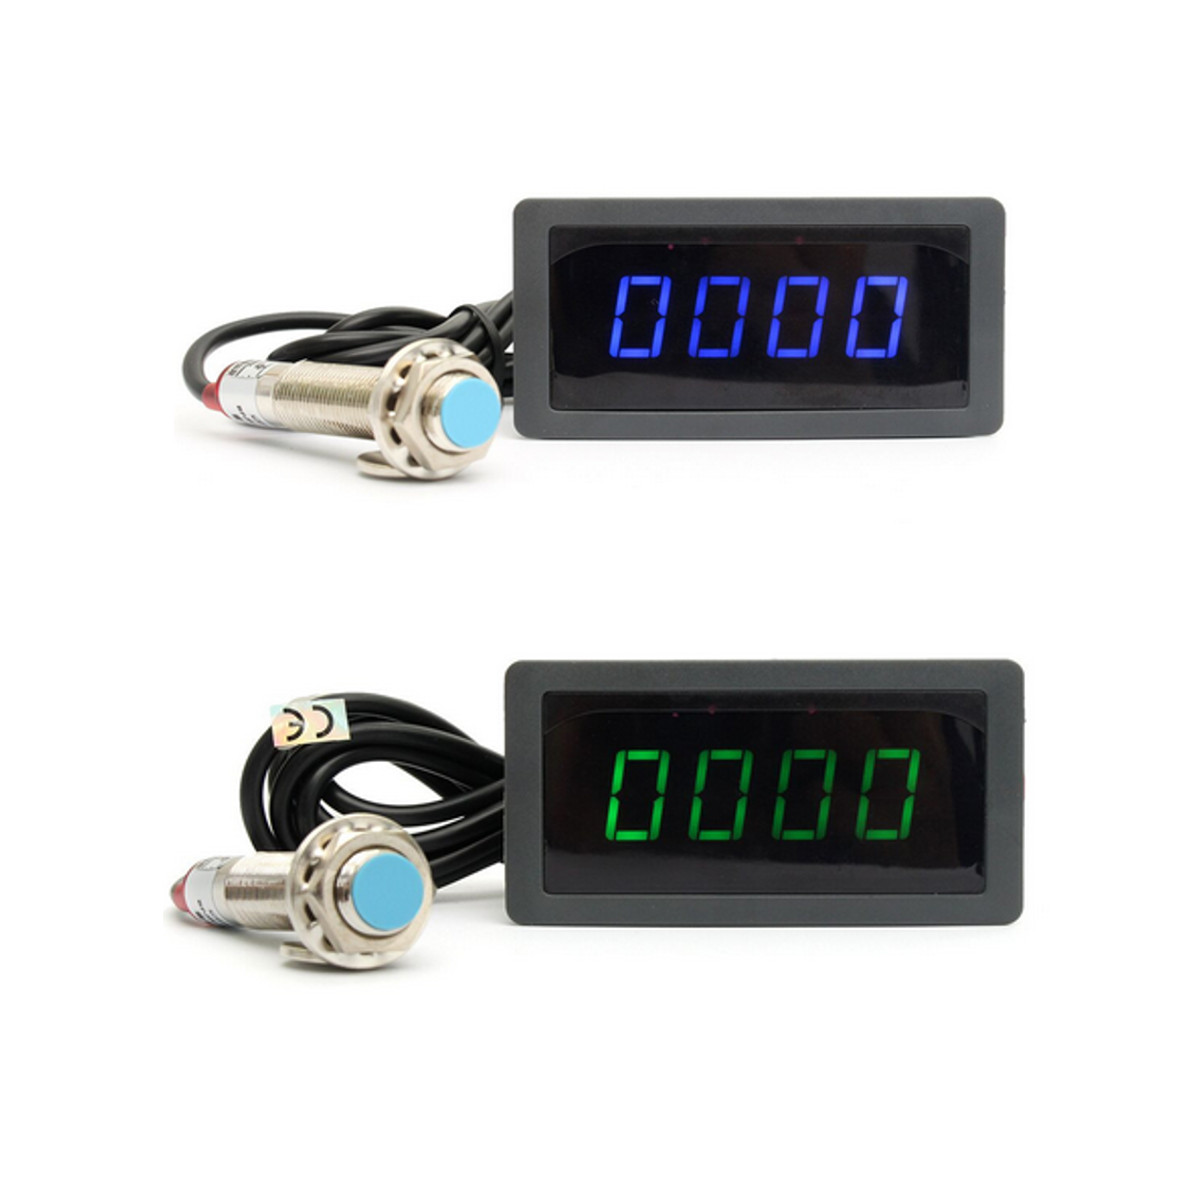 Blue Green 4 Digital LED Tachometer RPM Speed Meter+Proximity Switch Sensor 12V Promotion hot sale 4 digital green led tachometer rpm speed meter proximity switch sensor 12v